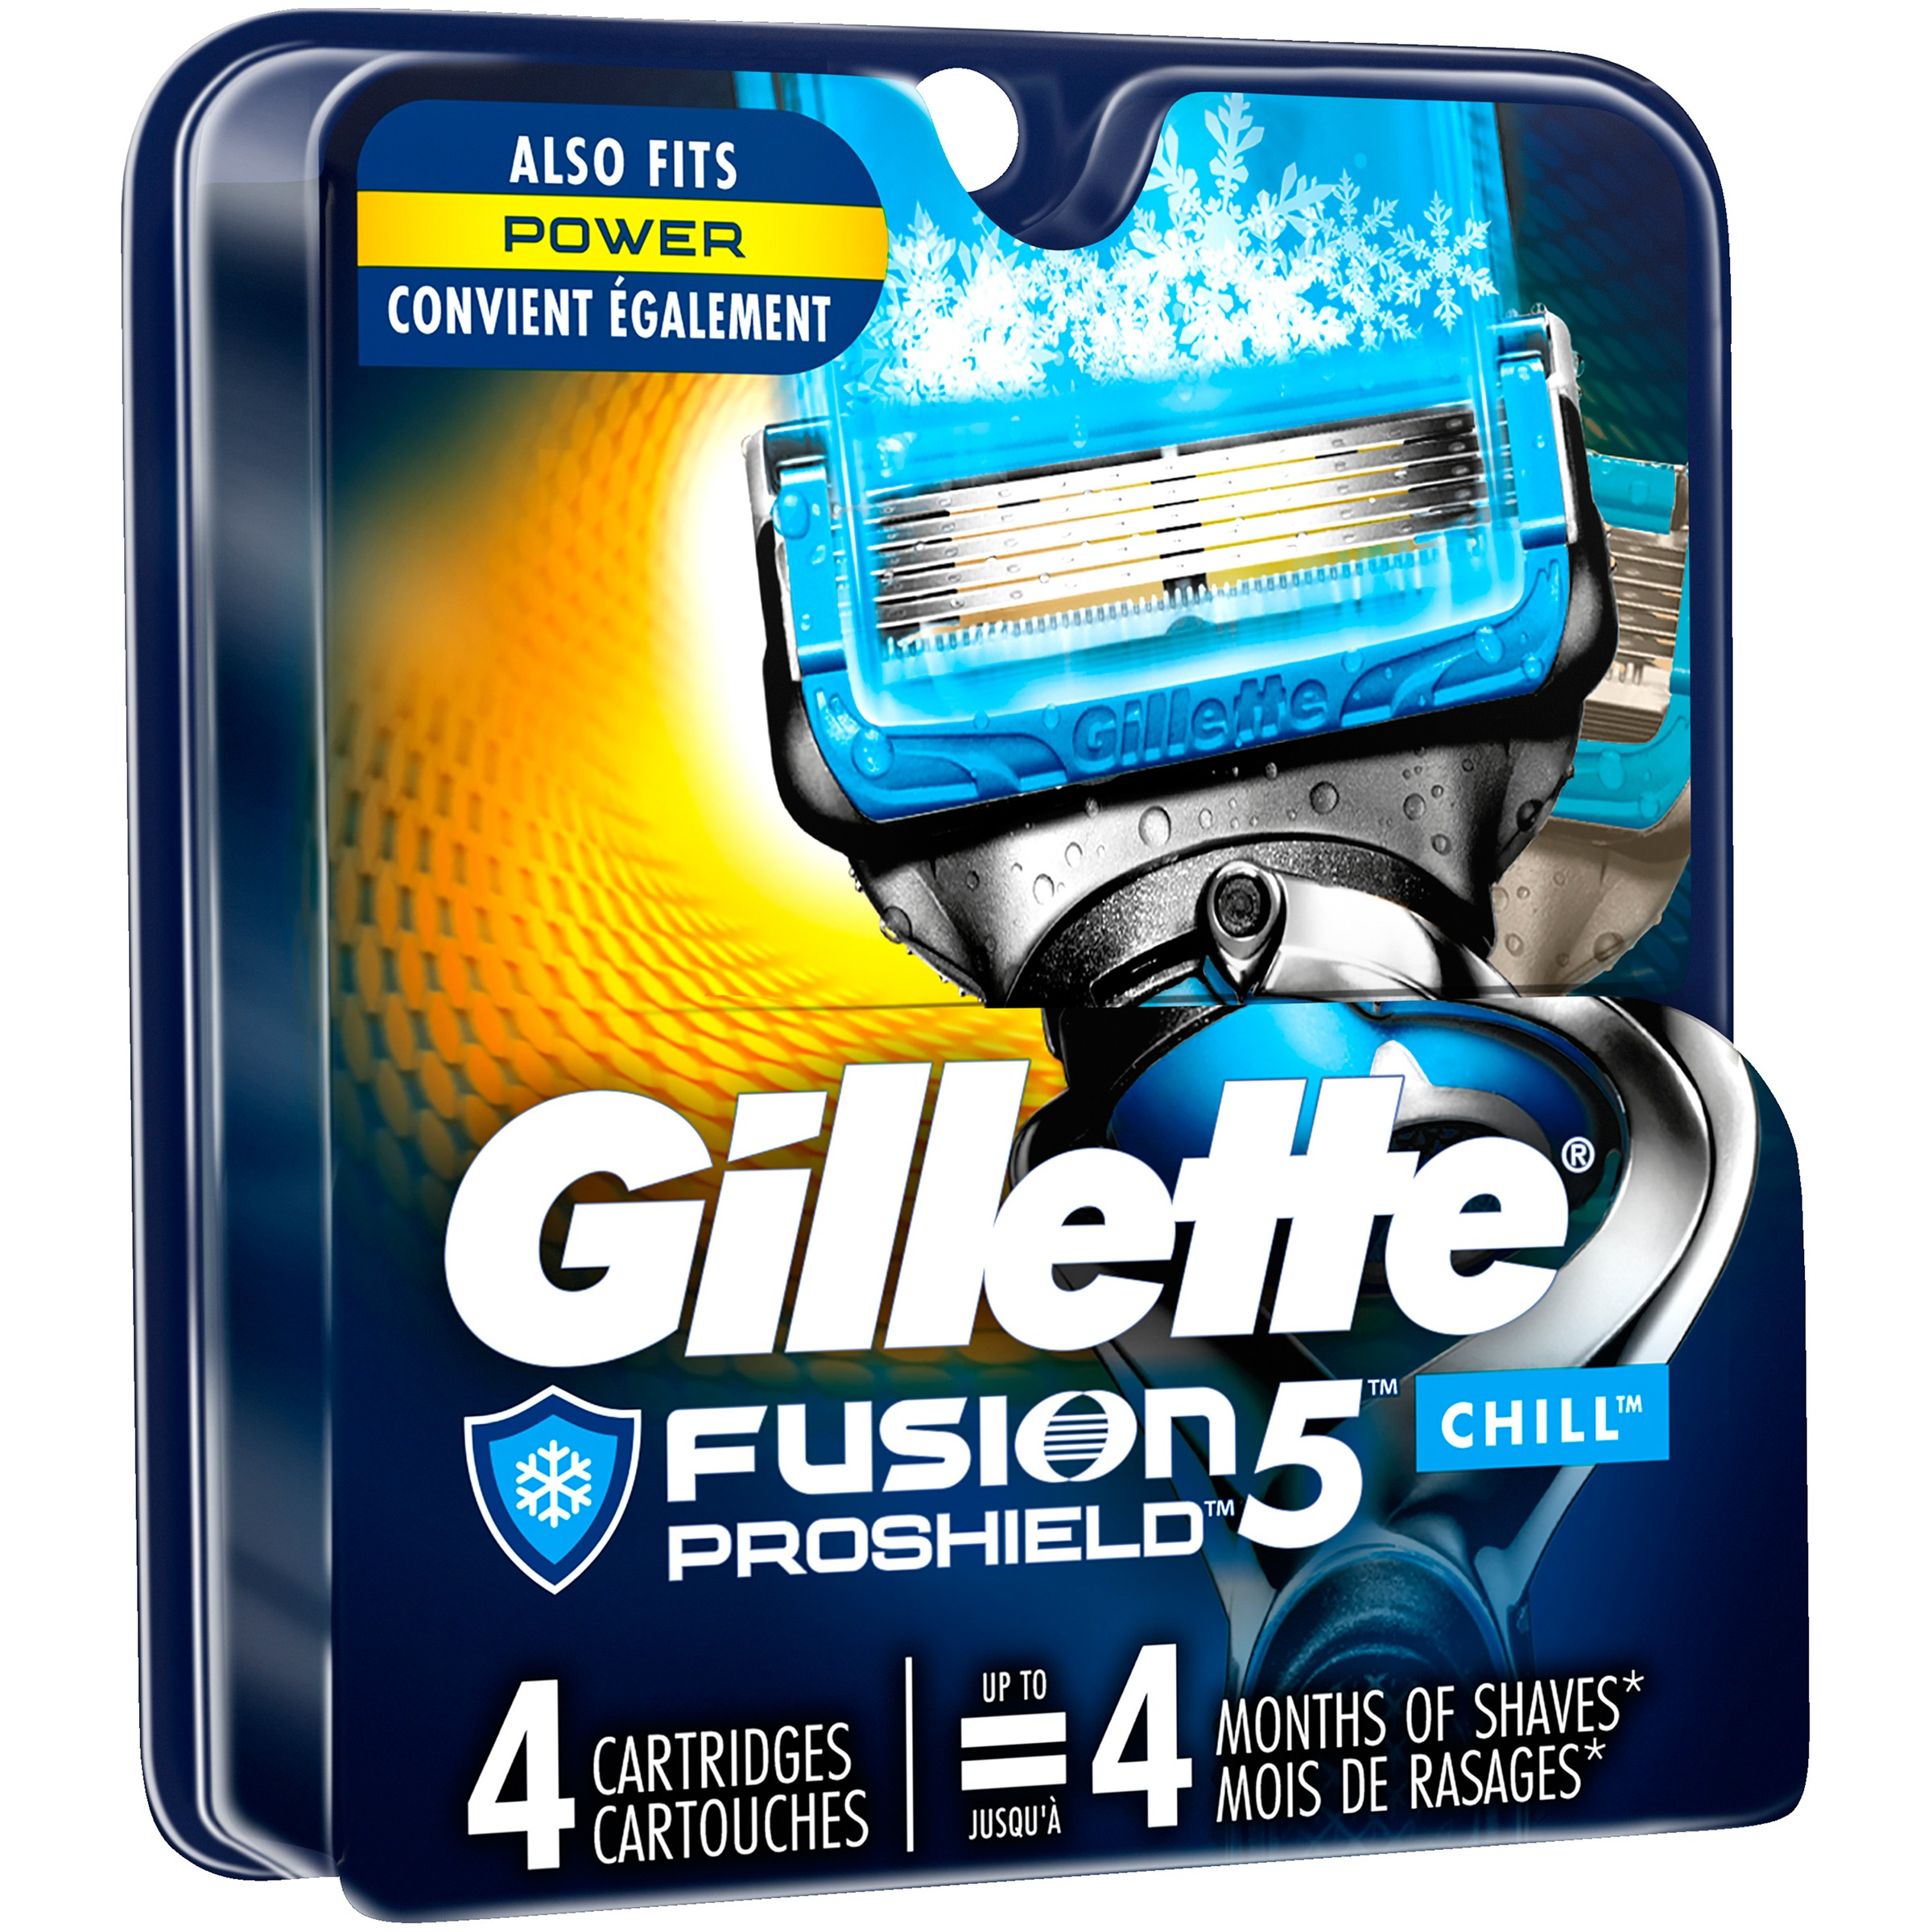 Gillette® Fusion5™ ProShield™ Chill™ Razor Cartridges 4 ct Carded Pack